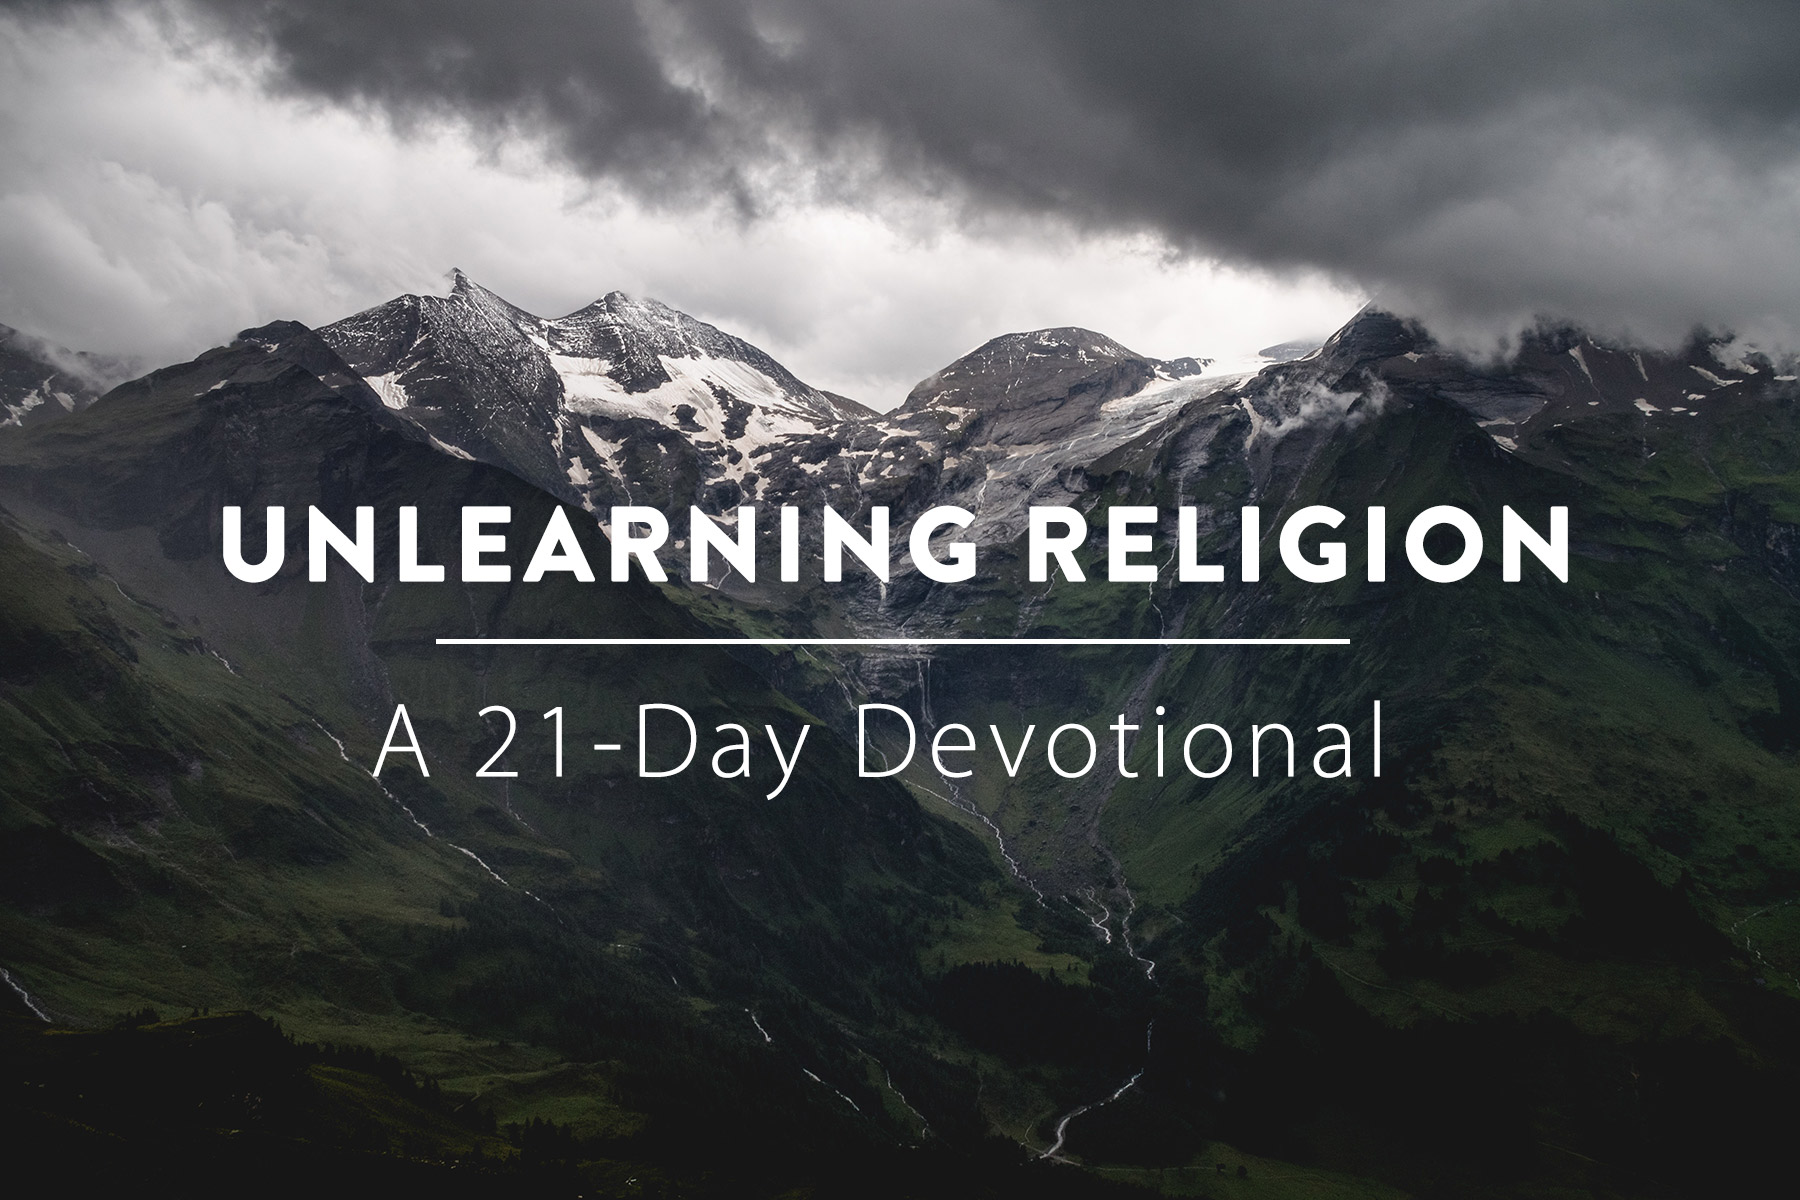 21-Days on Unlearning Religion